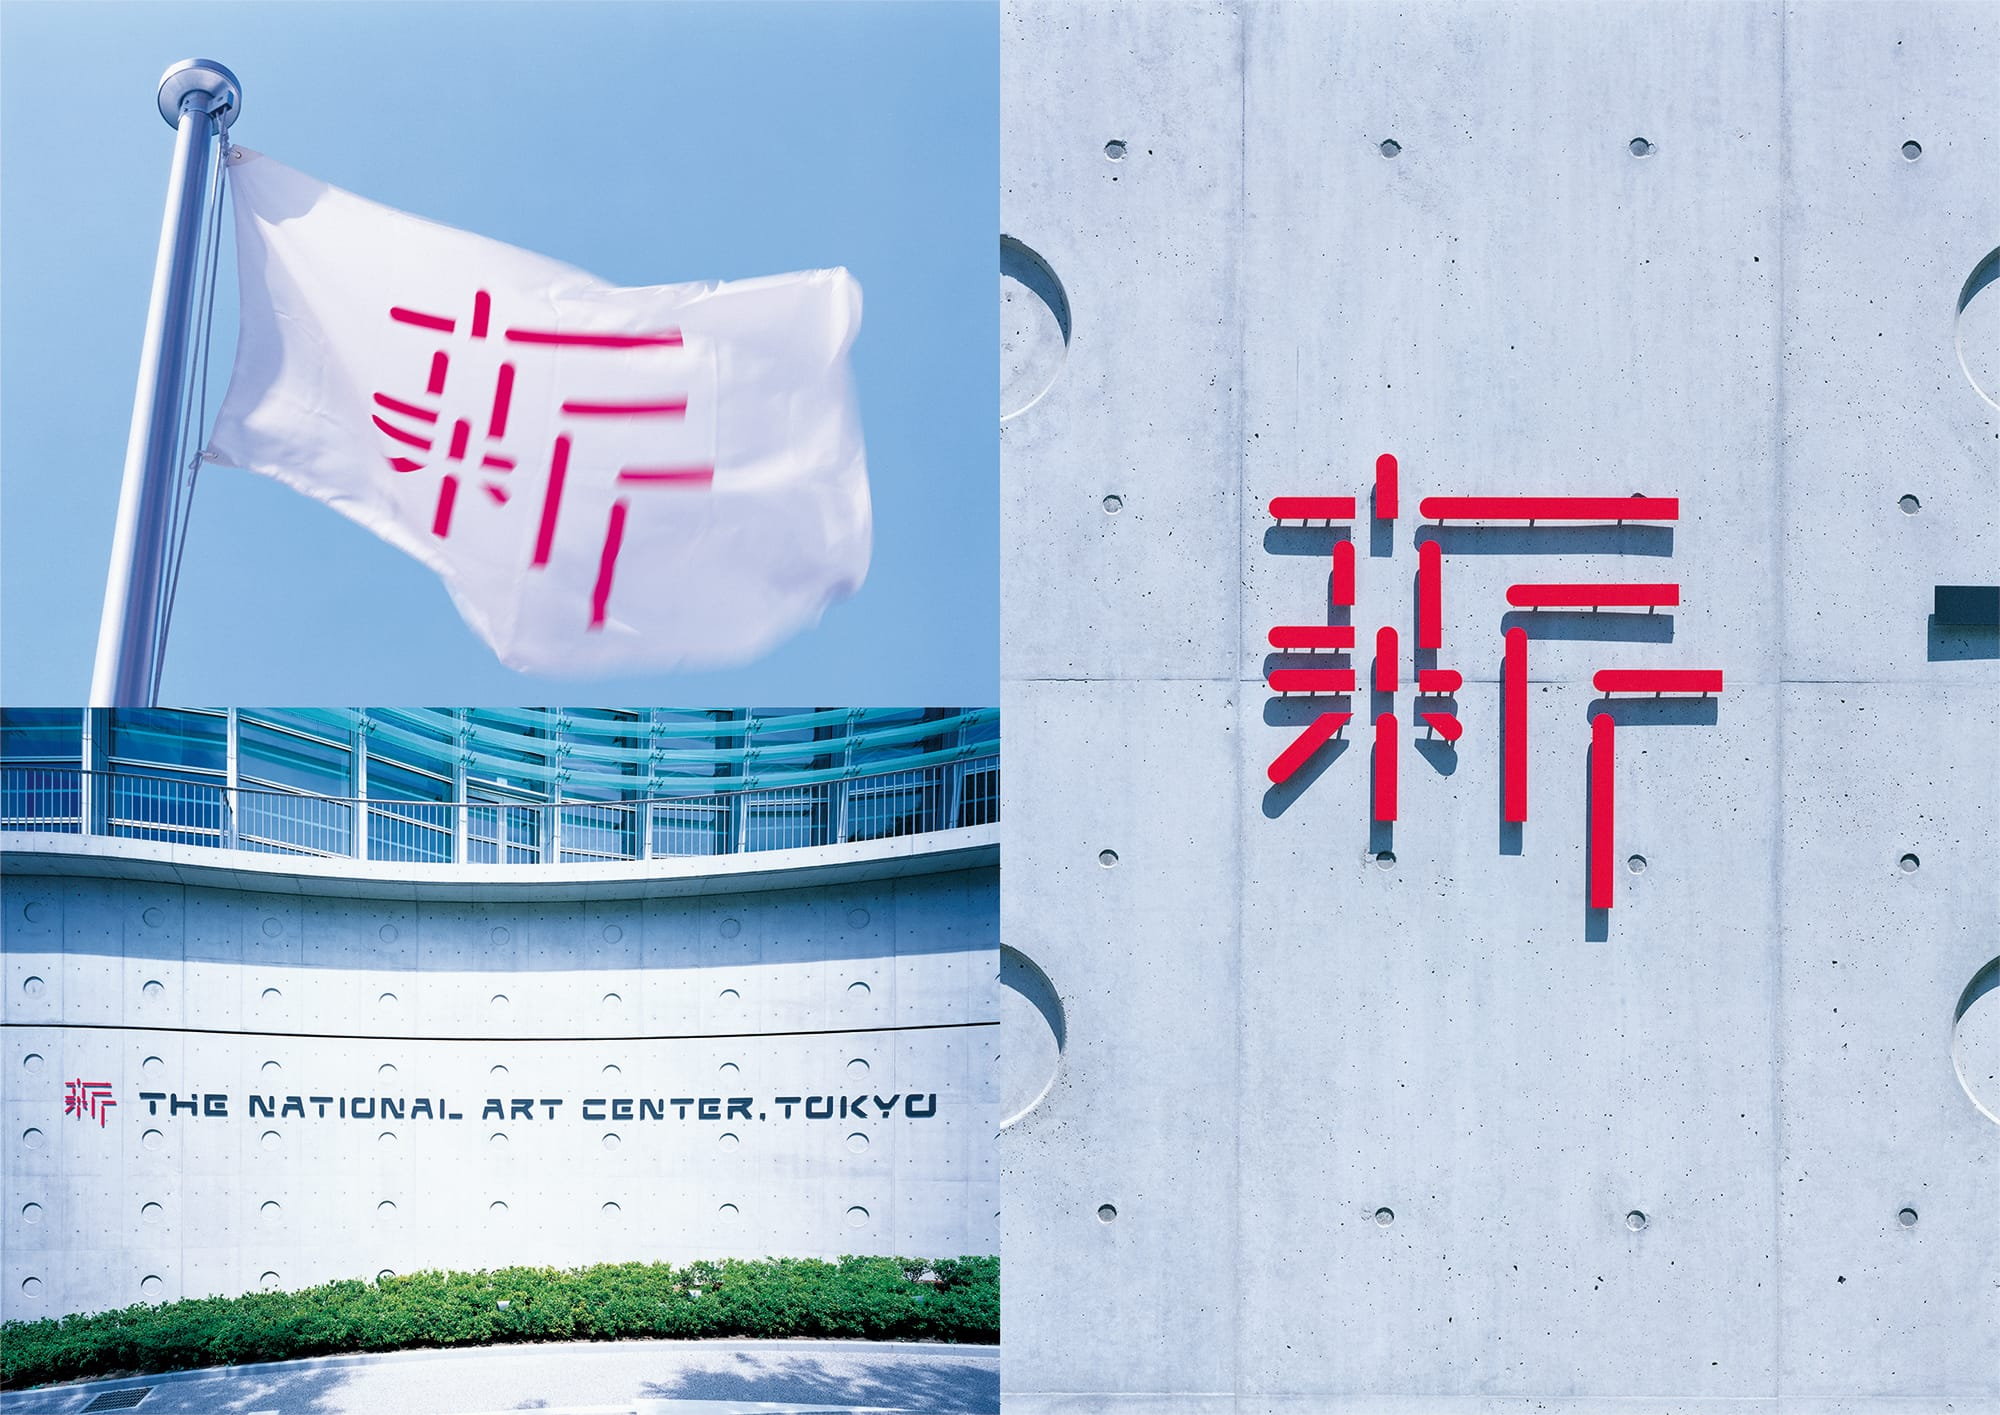 "In 2007, Sato designed the logo for the NACT which opened in Roppongi. Since the museum focused on new concepts such as being a museum without a collection and carrying a role as an art information center, Sato chose the Japanese kanji character ""shin"" (new) for their symbol mark."